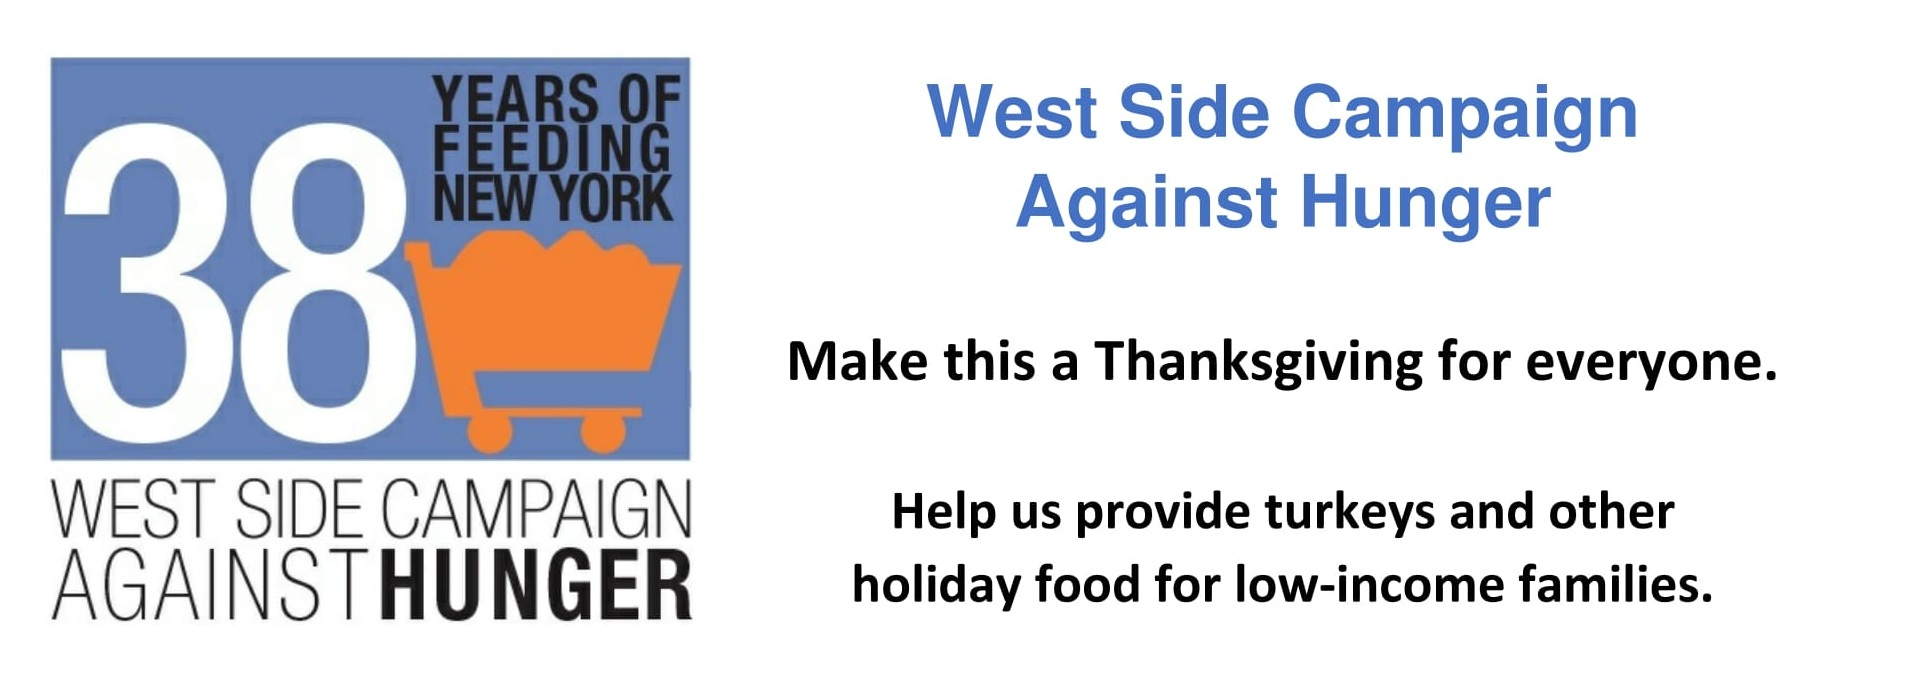 West Side Campaign Against Hunger Thousand Turkey Challenge